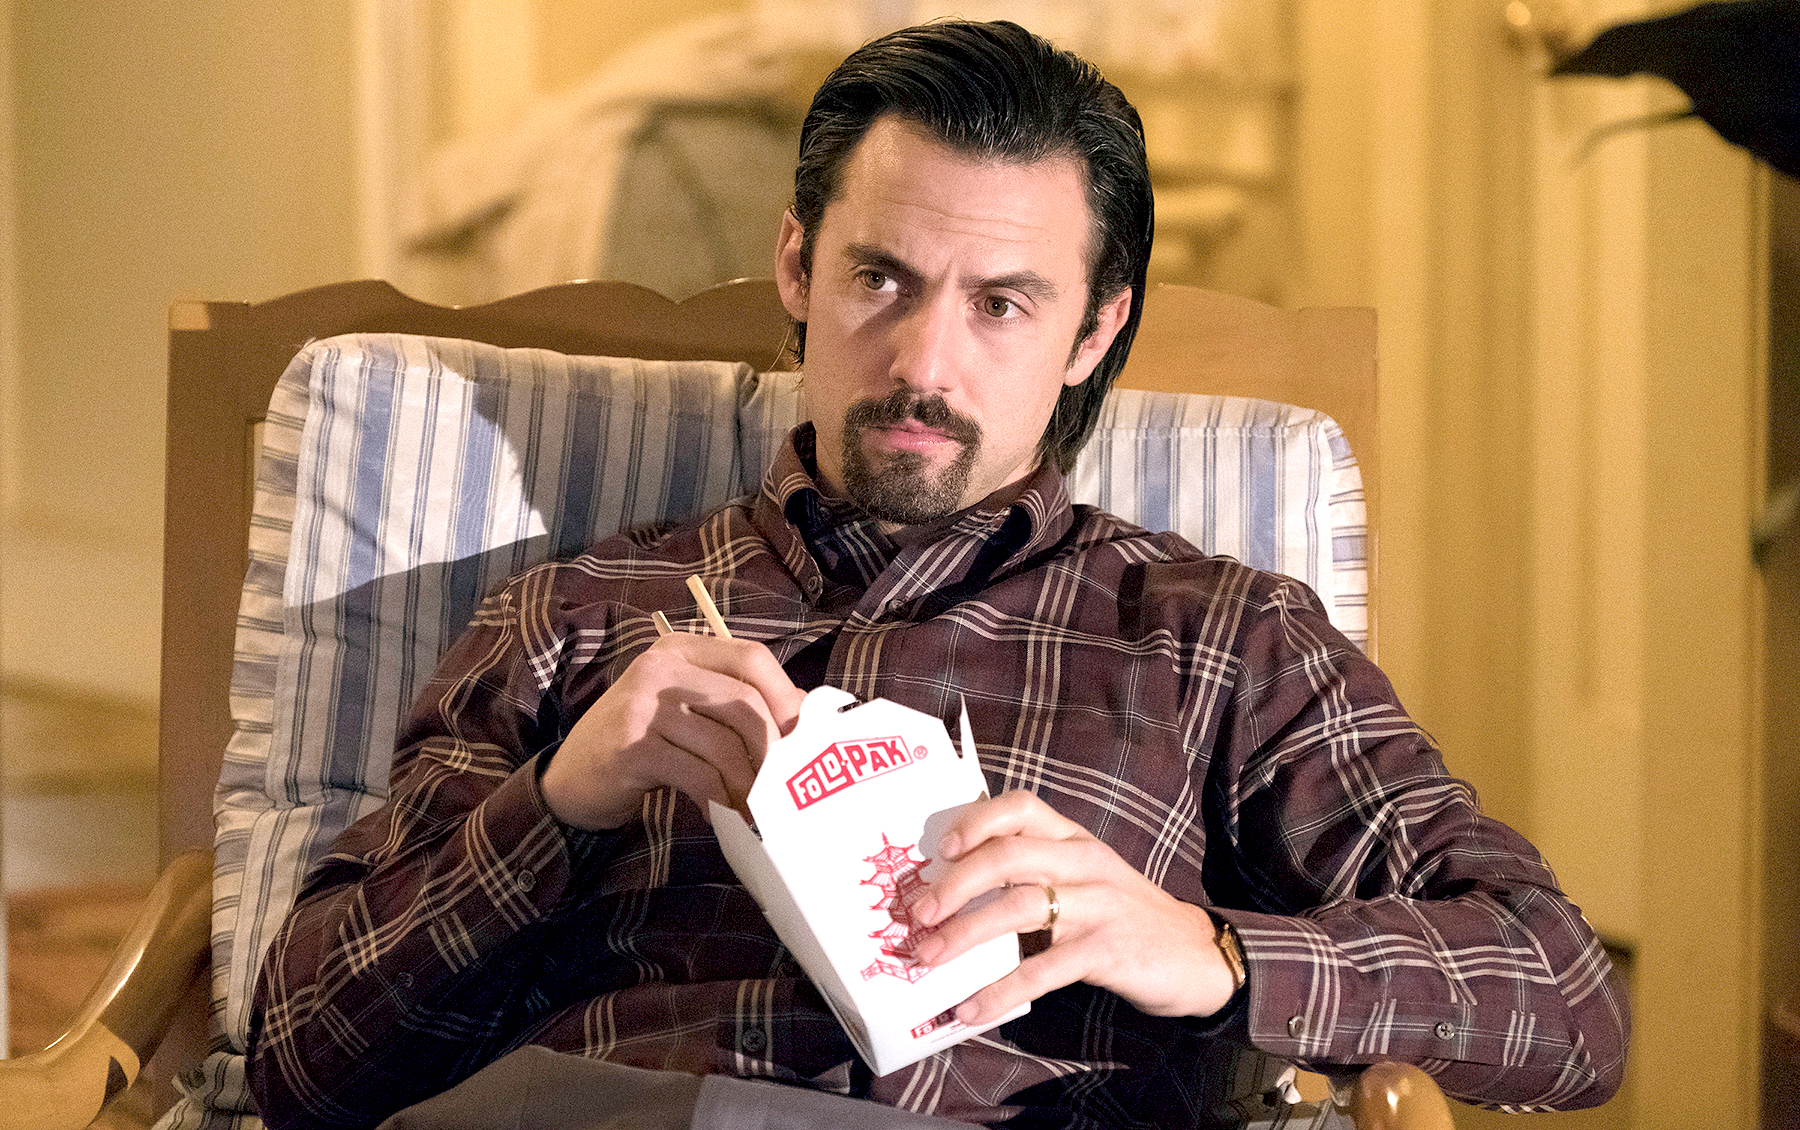 Milo Ventimiglia as Jack on This Is Us.